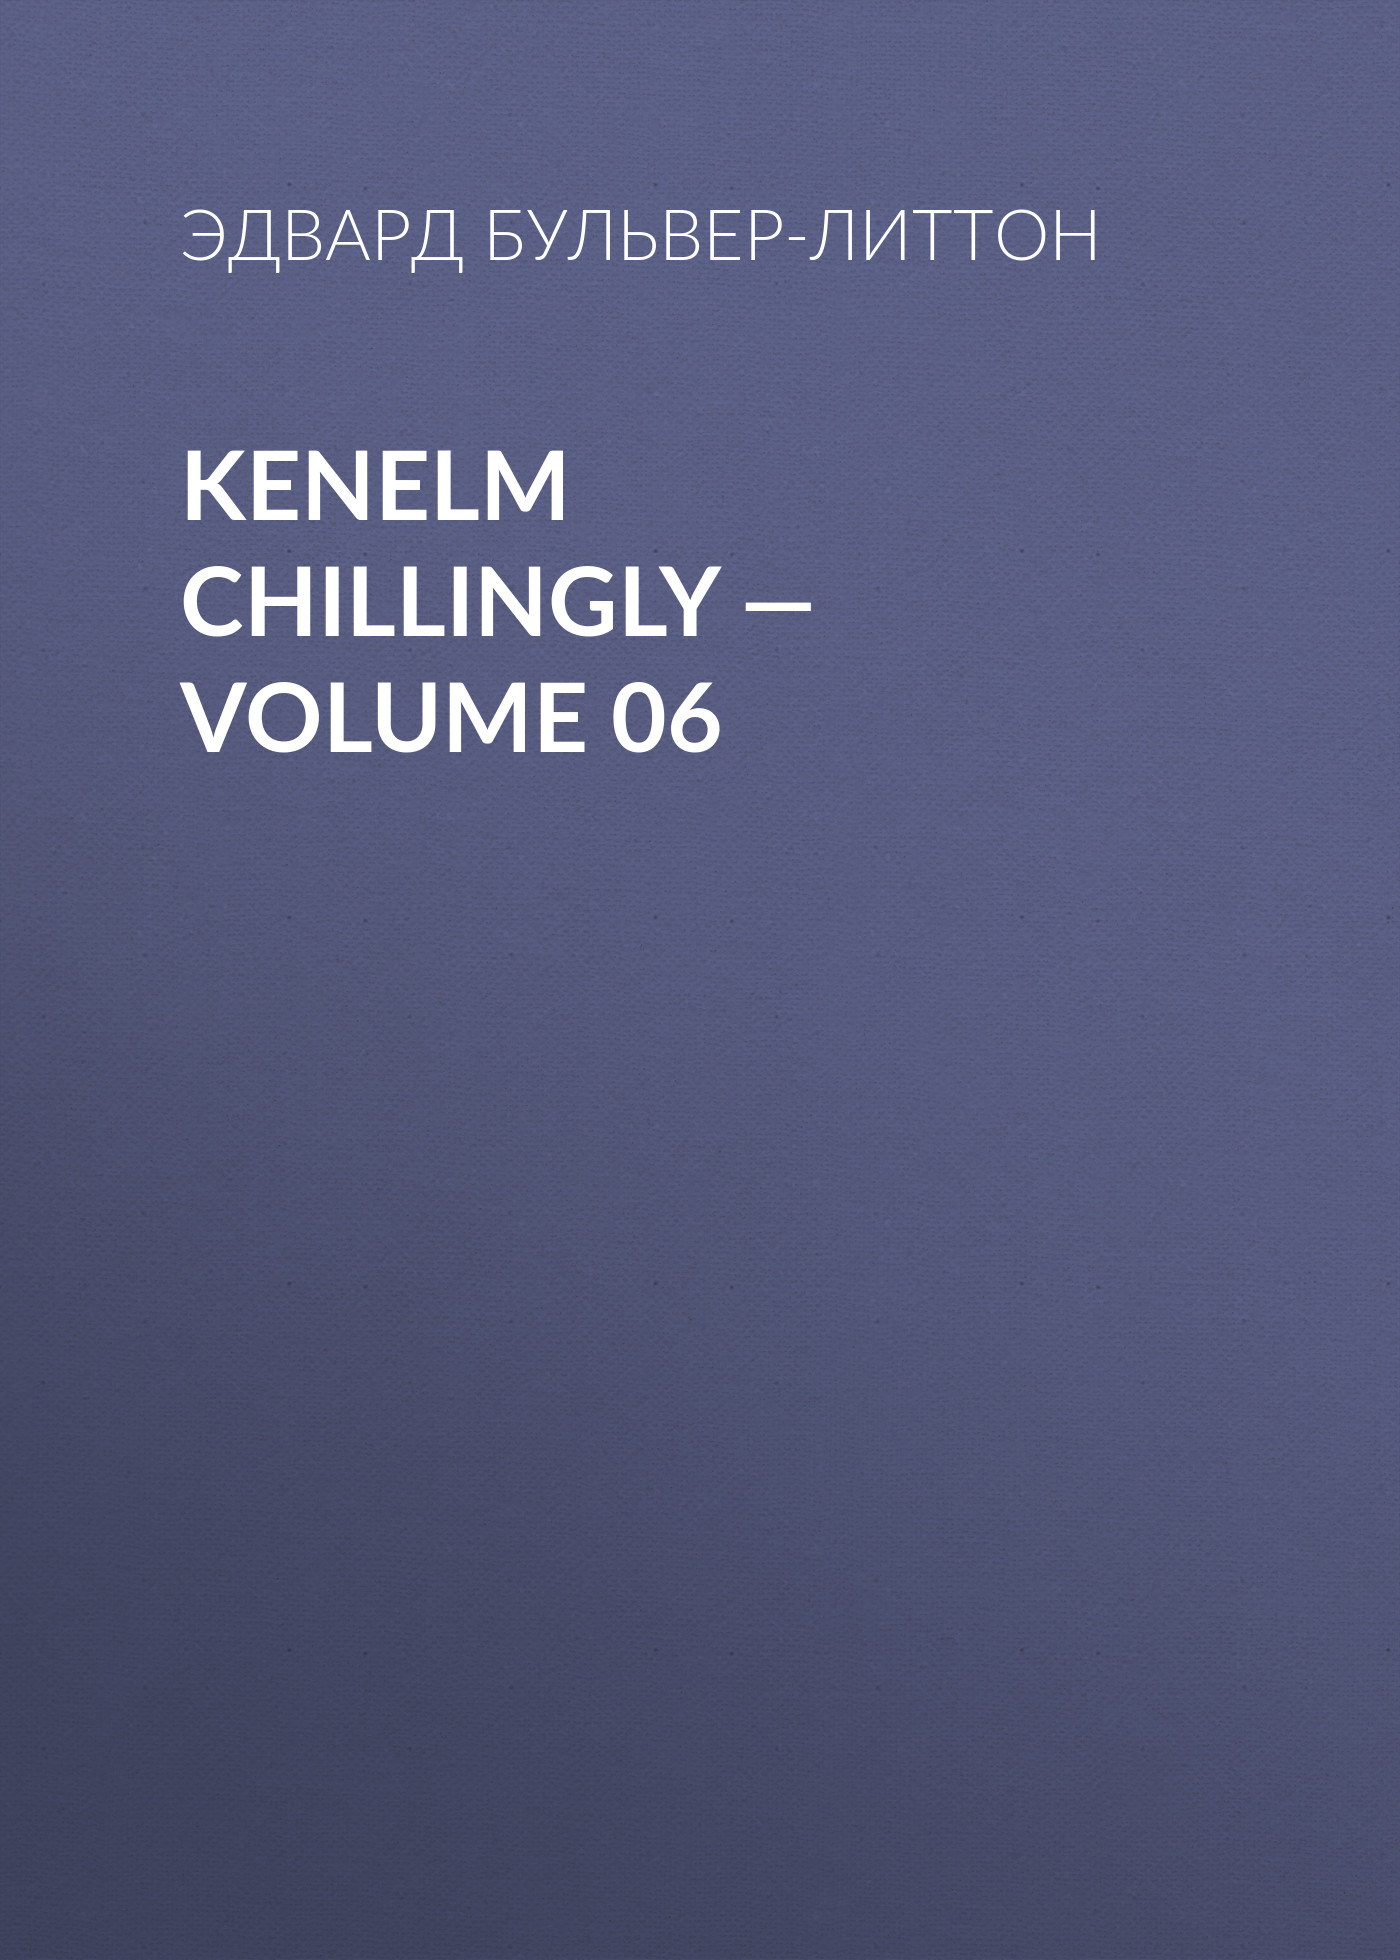 цены на Эдвард Бульвер-Литтон Kenelm Chillingly — Volume 06  в интернет-магазинах